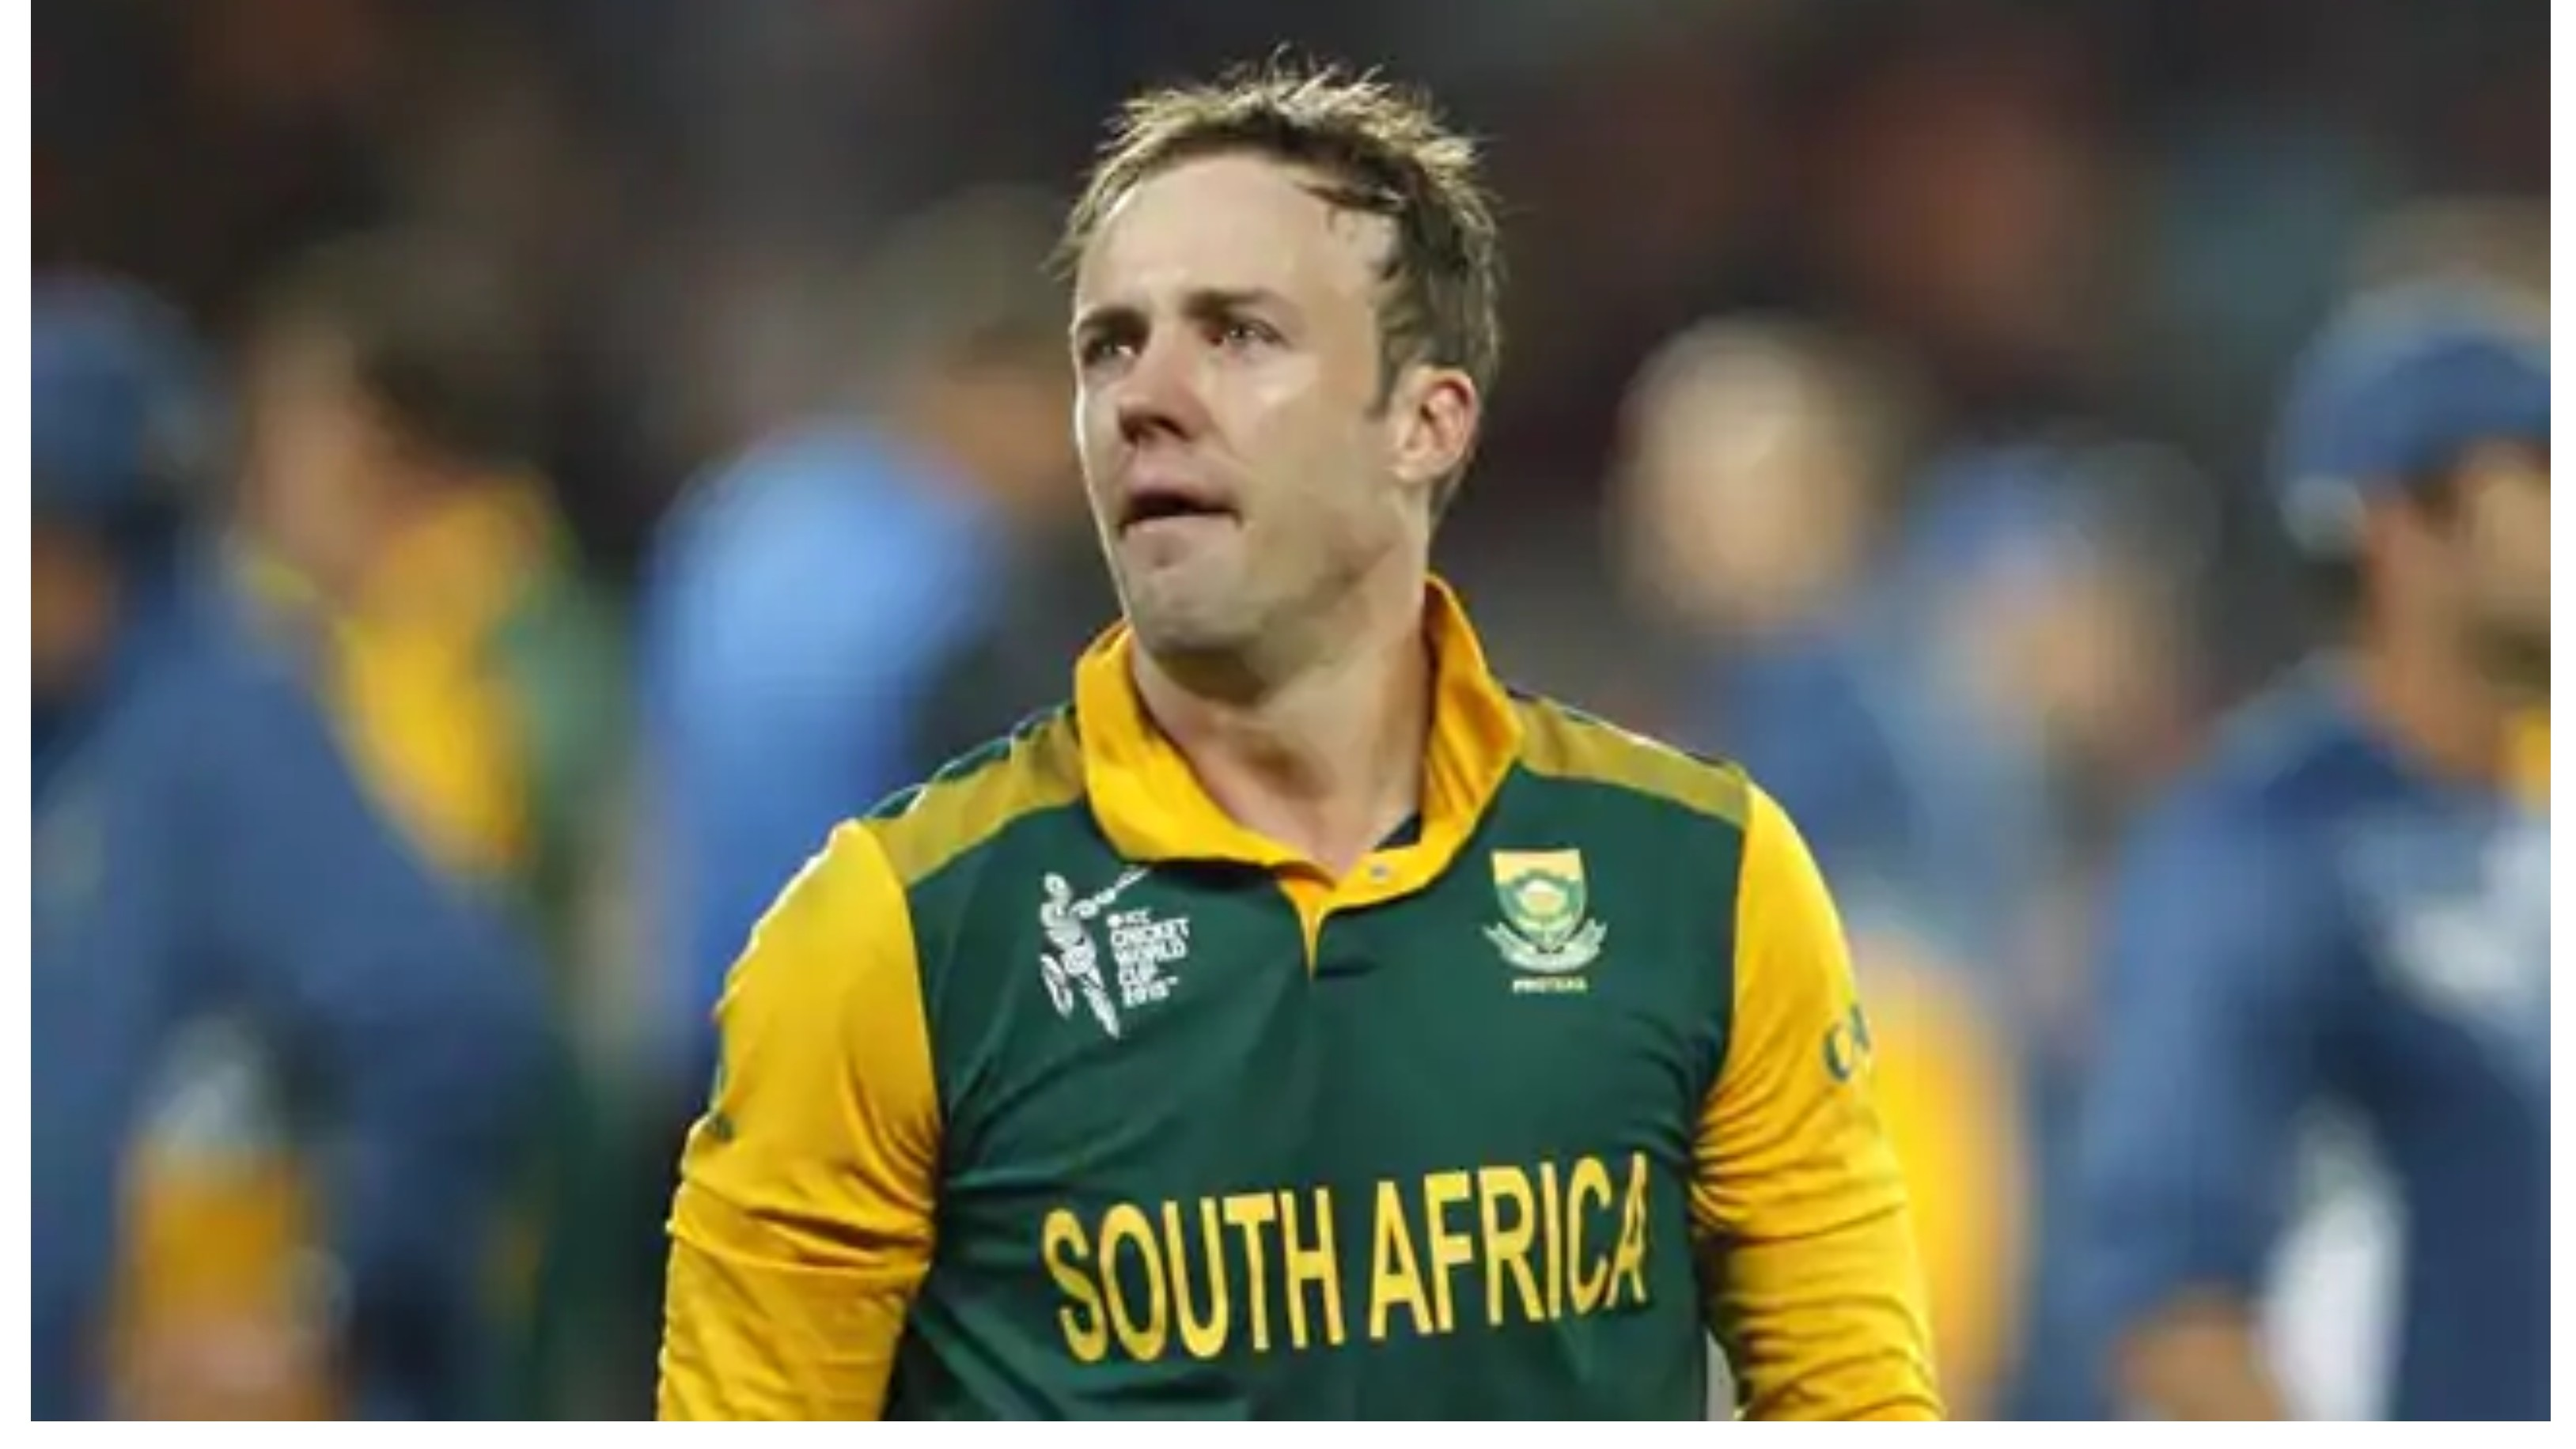 'Next 12 months was really tough', De Villiers admits being left dejected after 2015 World Cup semi loss